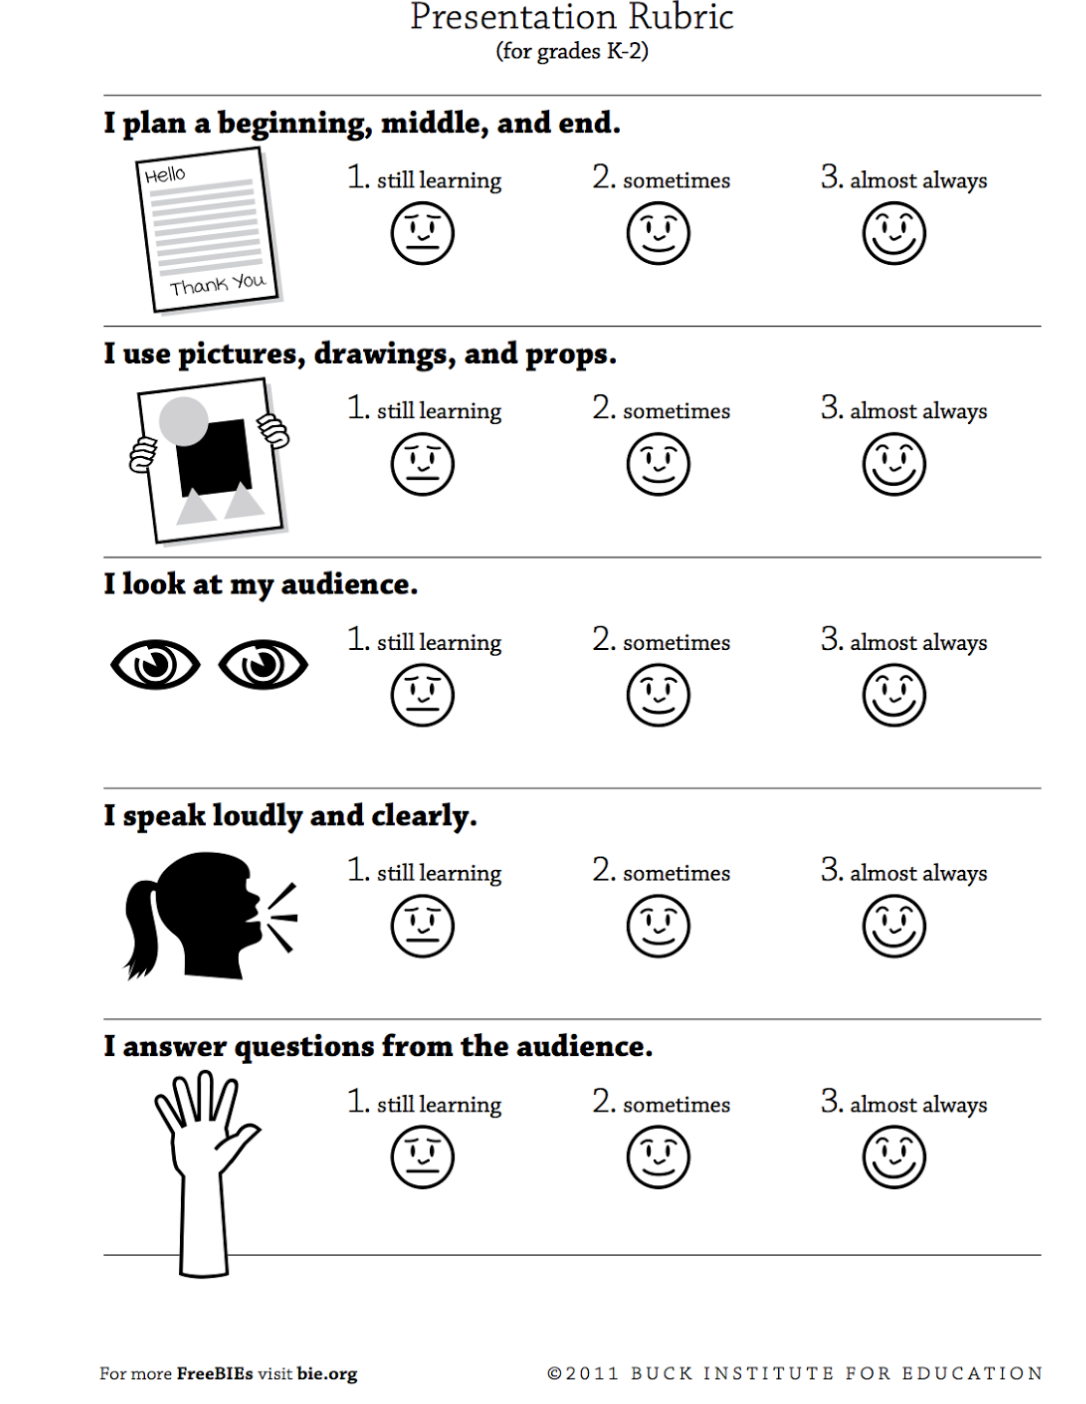 Great Rubrics To Develop Students Presentations And Speaking